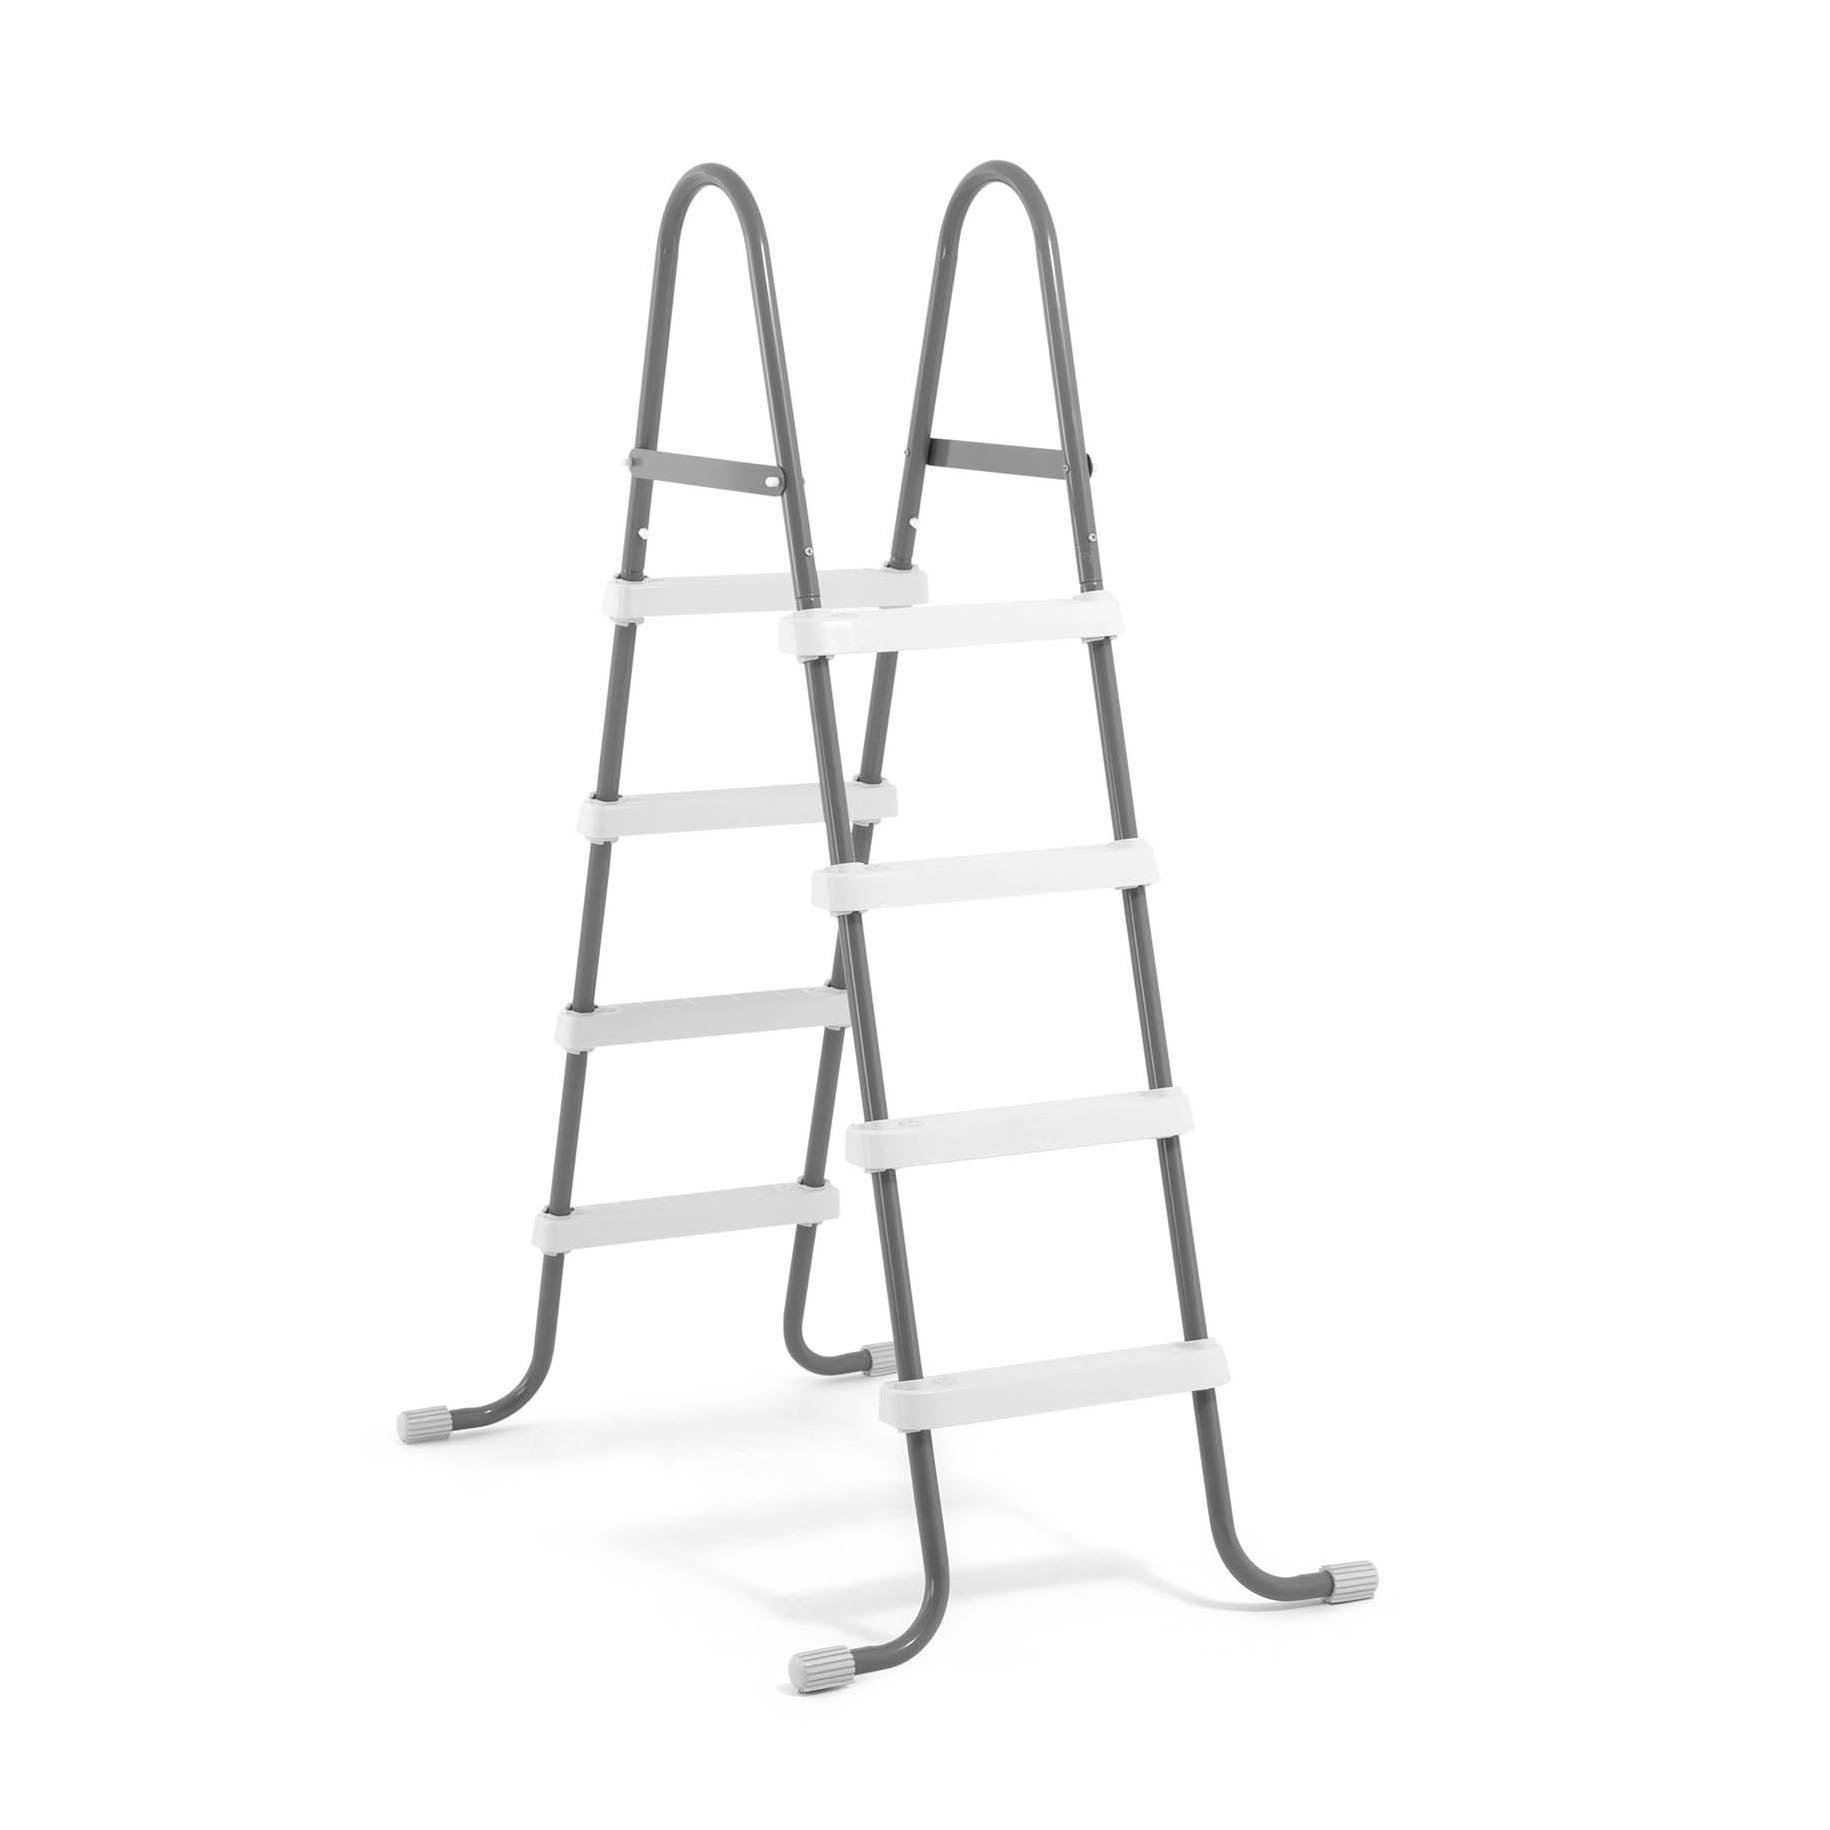 Intex 28066E Steel Frame Swimming Pool Ladder 48 Inch Wall Height Pools by Intex